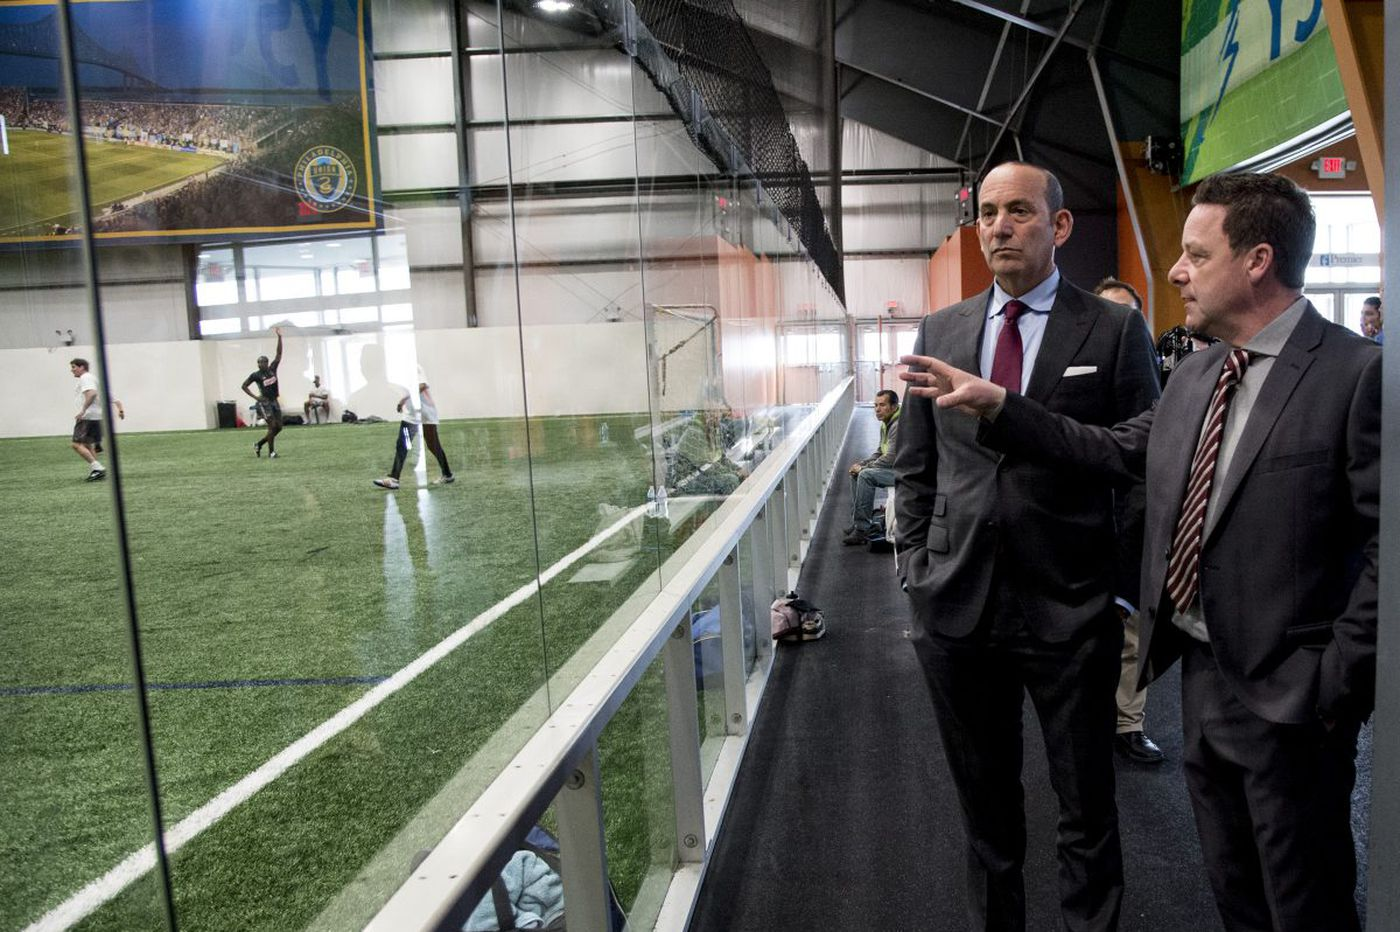 Union academy director Tommy Wilson helps lay groundwork for new MLS youth league